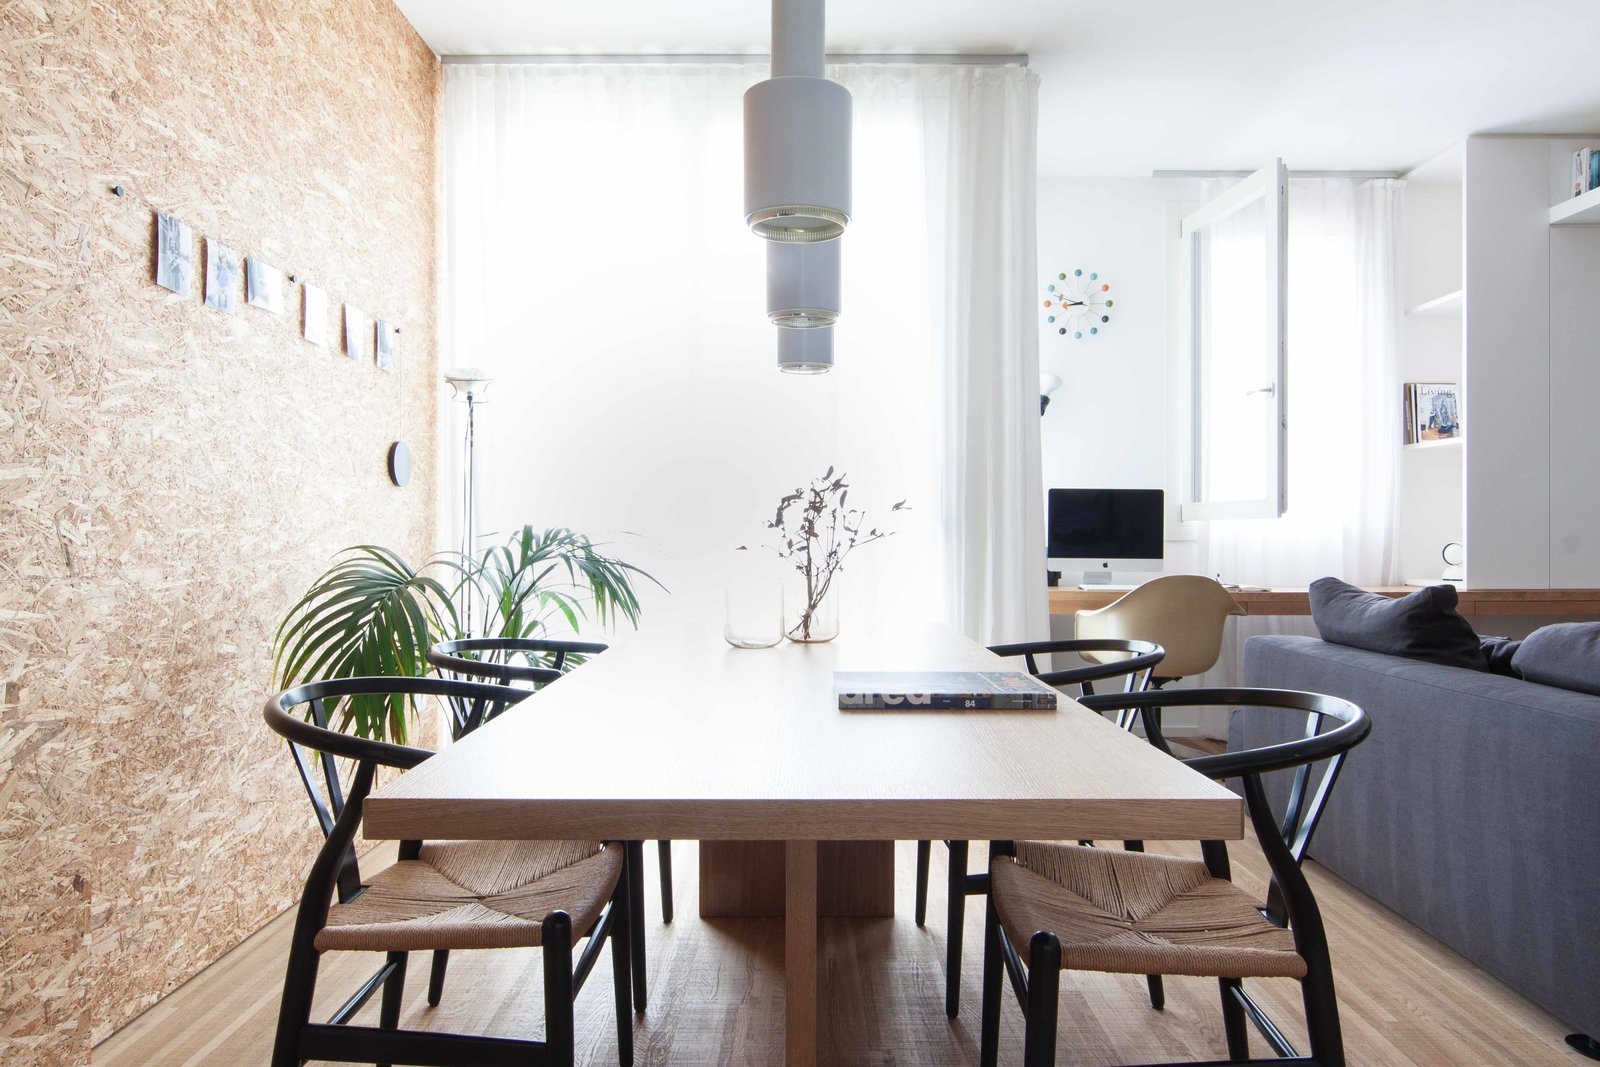 Tagged: Dining Room, Table, Medium Hardwood Floor, Pendant Lighting, and Chair.  Interior LP by Didonè Comacchio